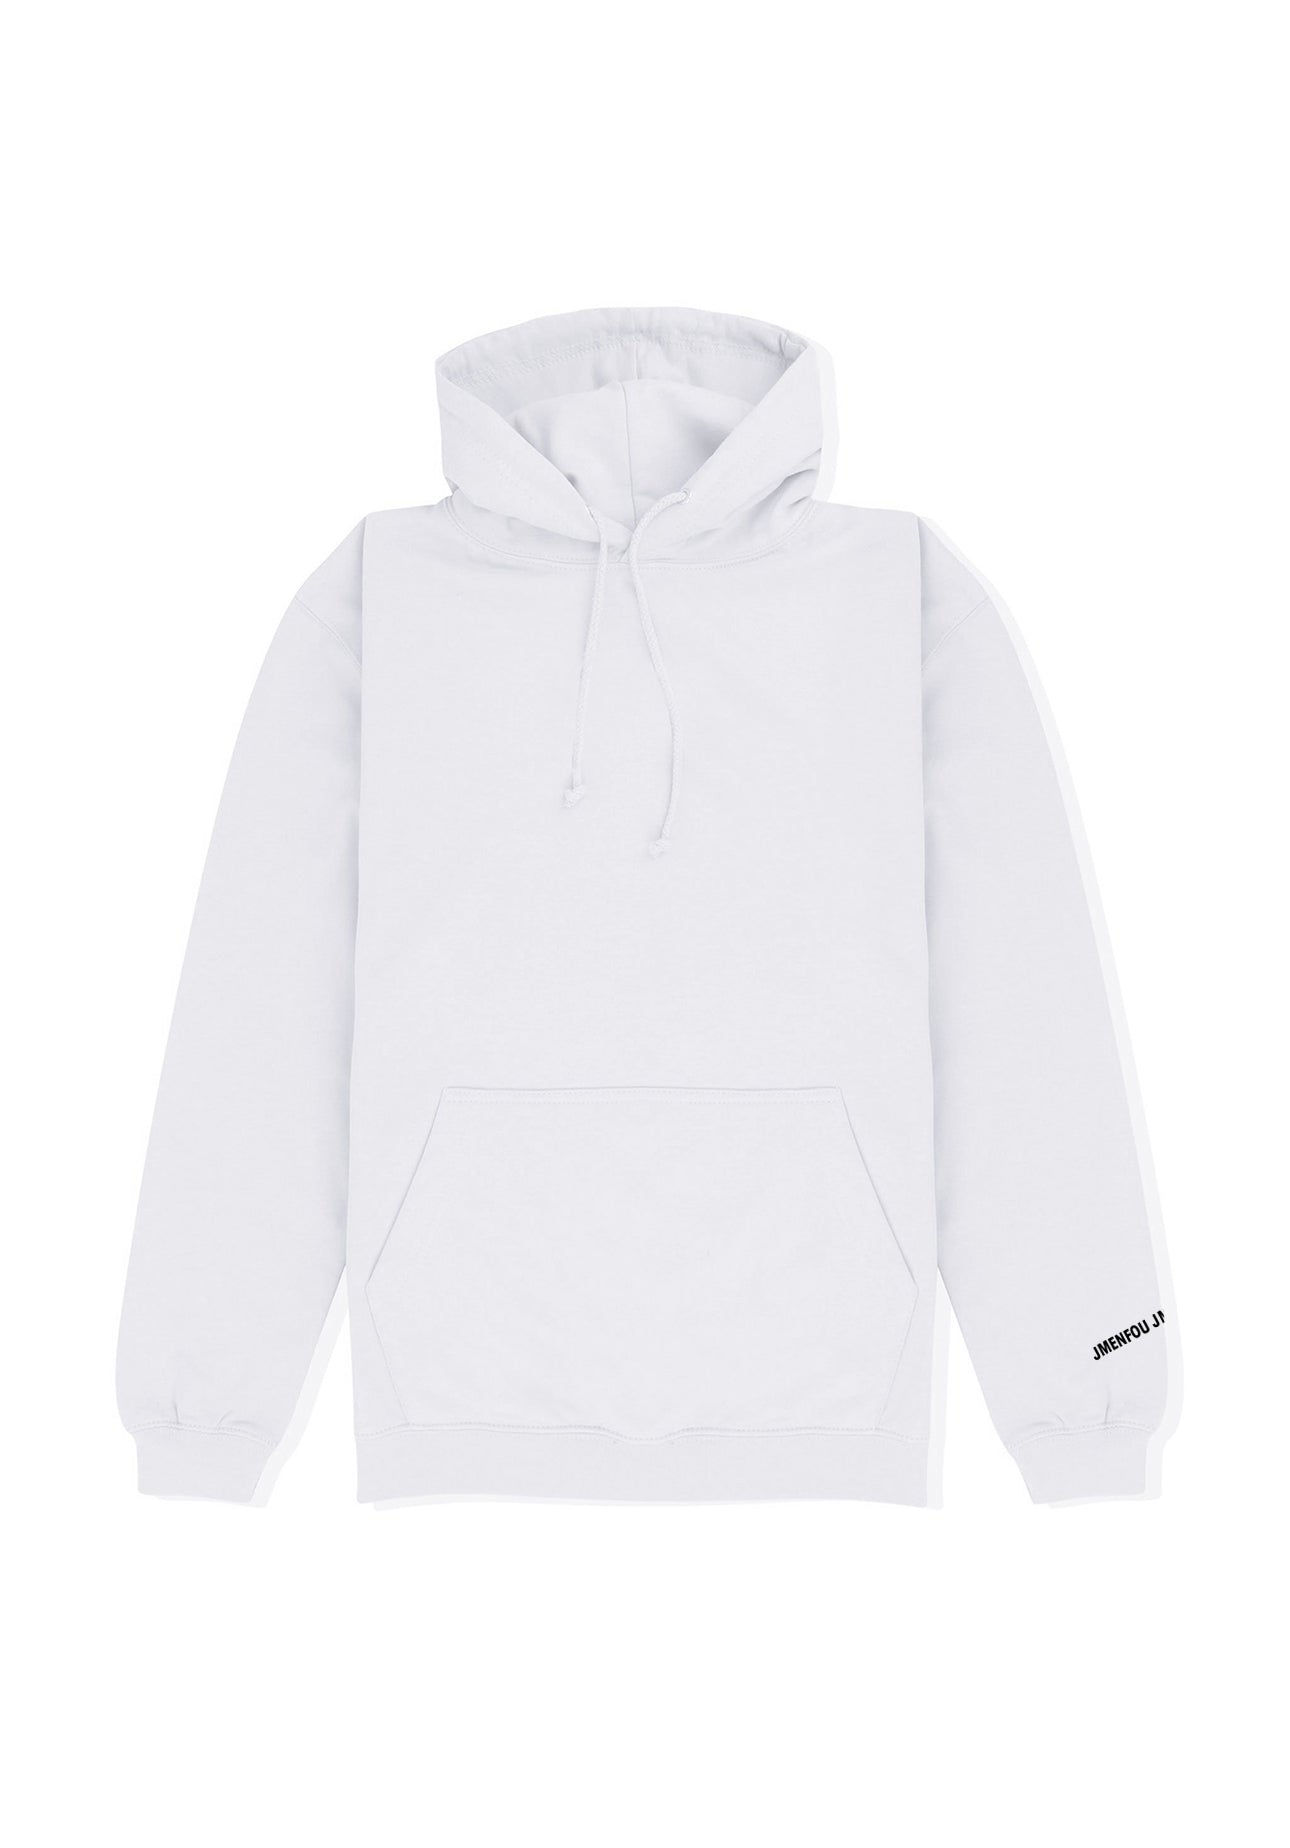 HOODIE RIGHT THINKS WHITE FRONT